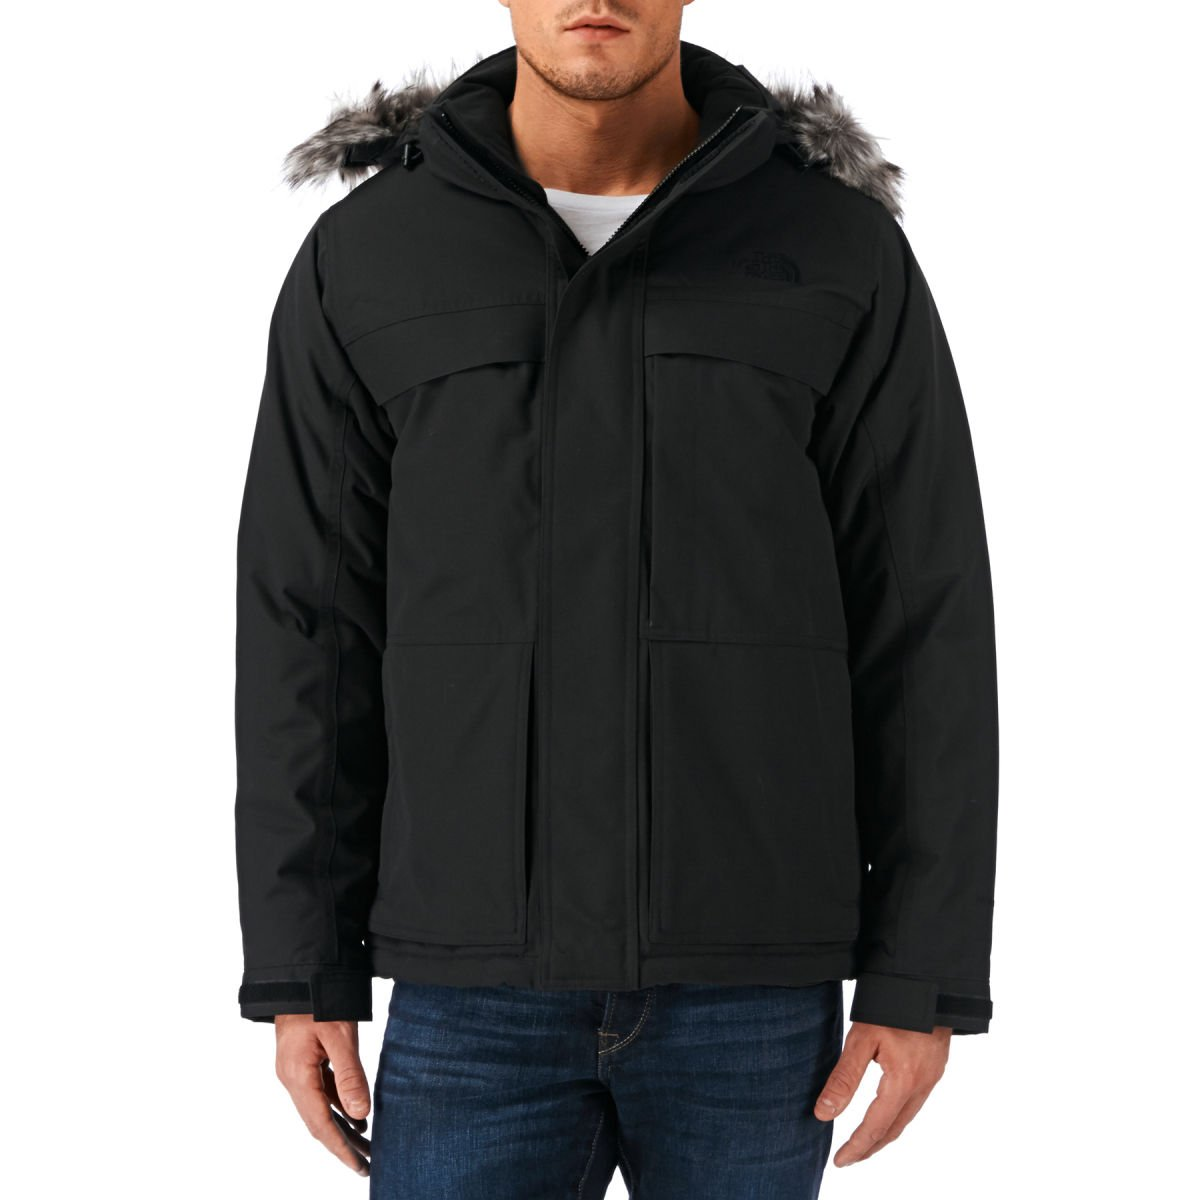 THE NORTH FACE Herren Jacke Nanavik kaufen